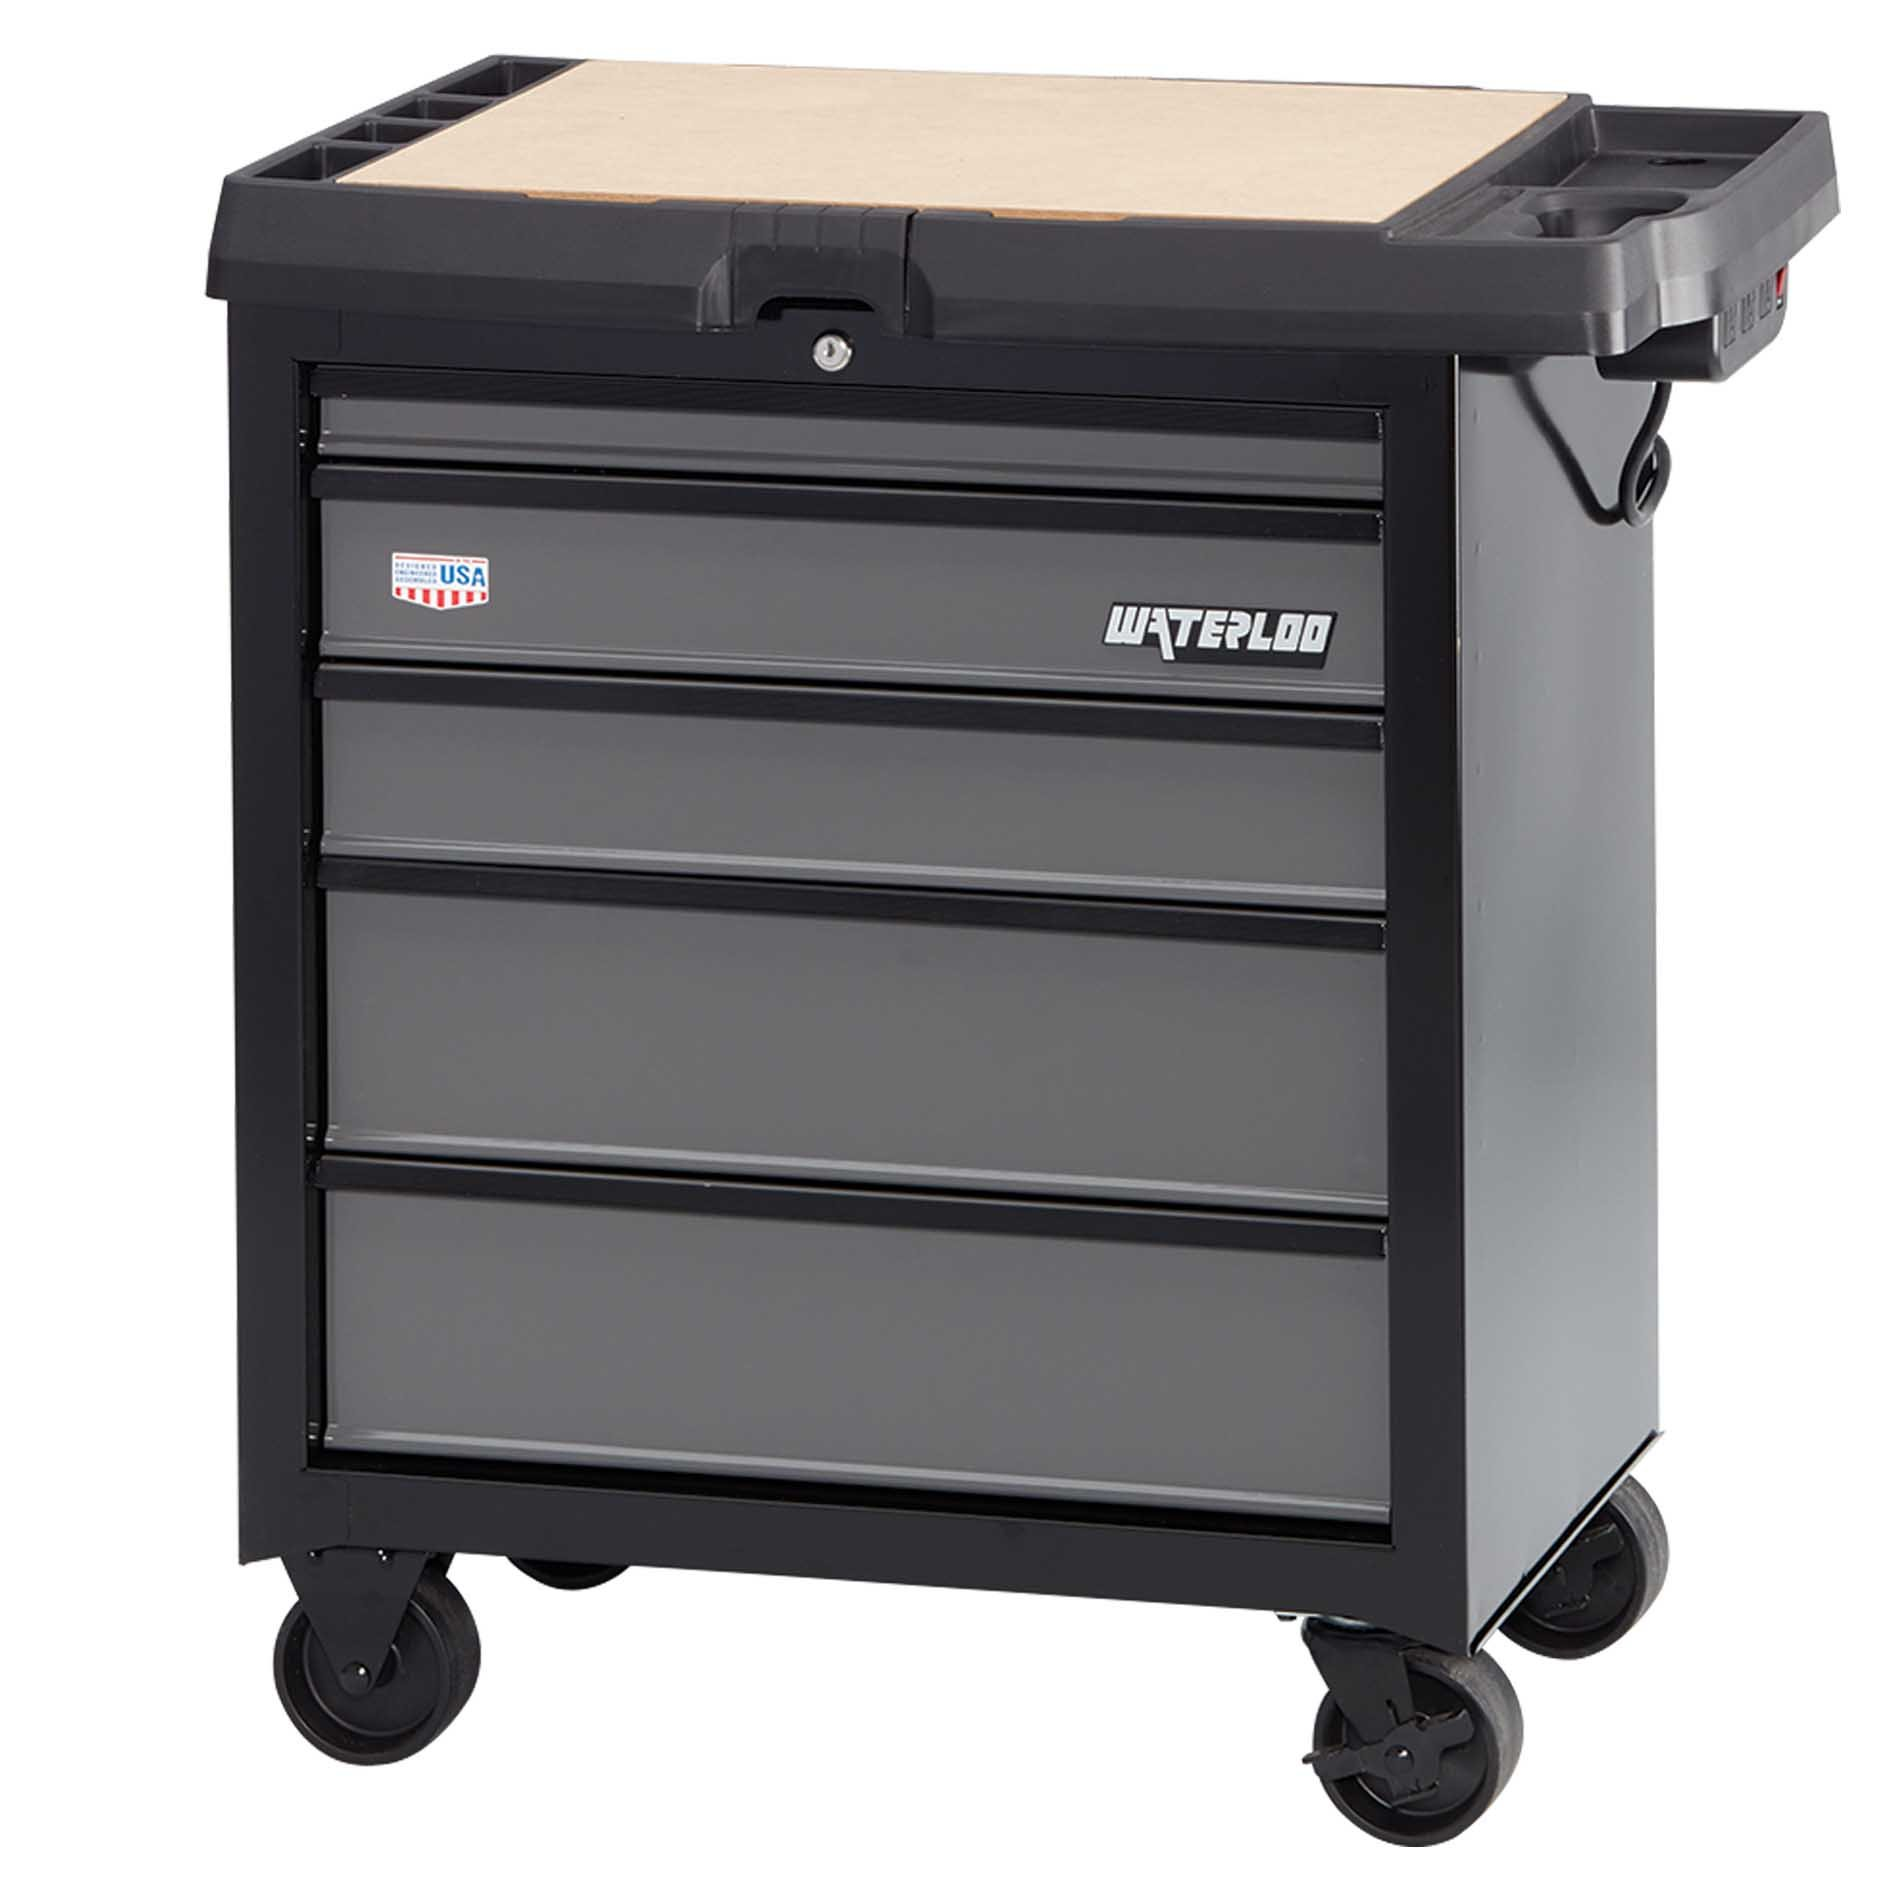 Waterloo W100 Series 5-Drawer Mobile Workbench with Integrated Power Strip, 26'' W